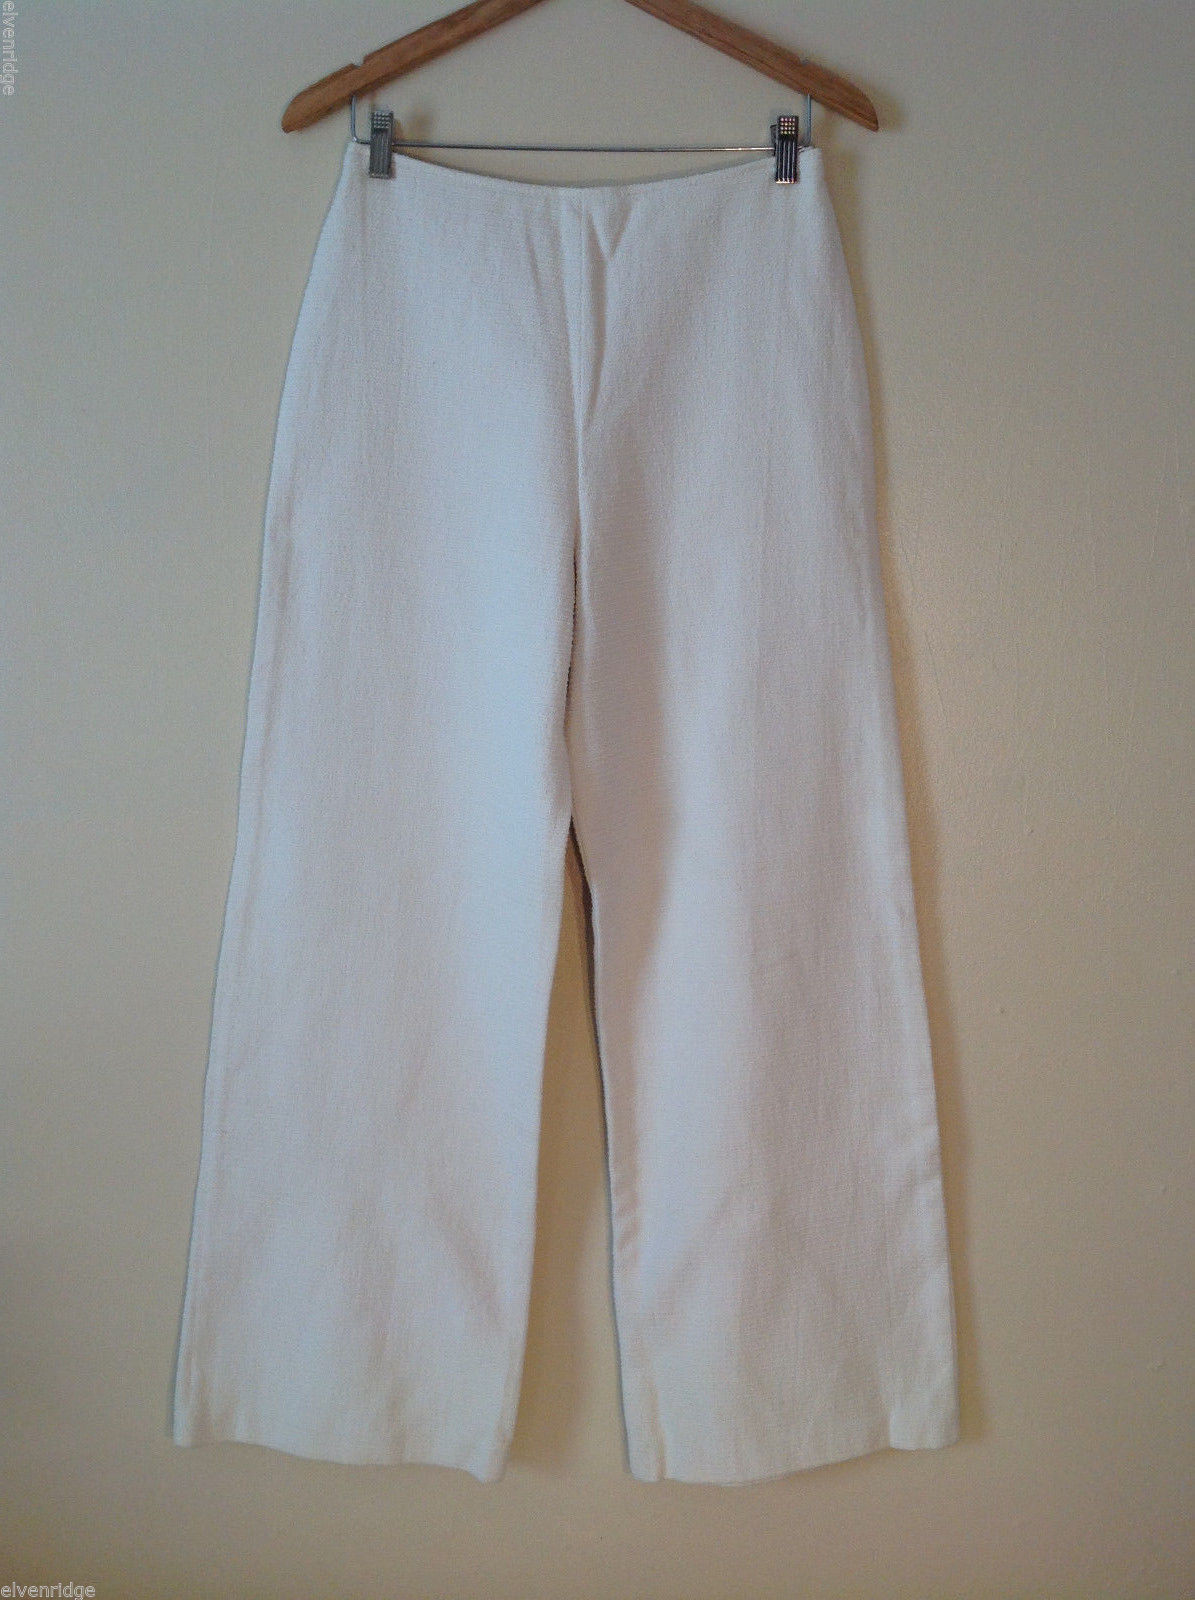 Womens Blair Delmonico cream colored thick tweed dressy pants Size 2